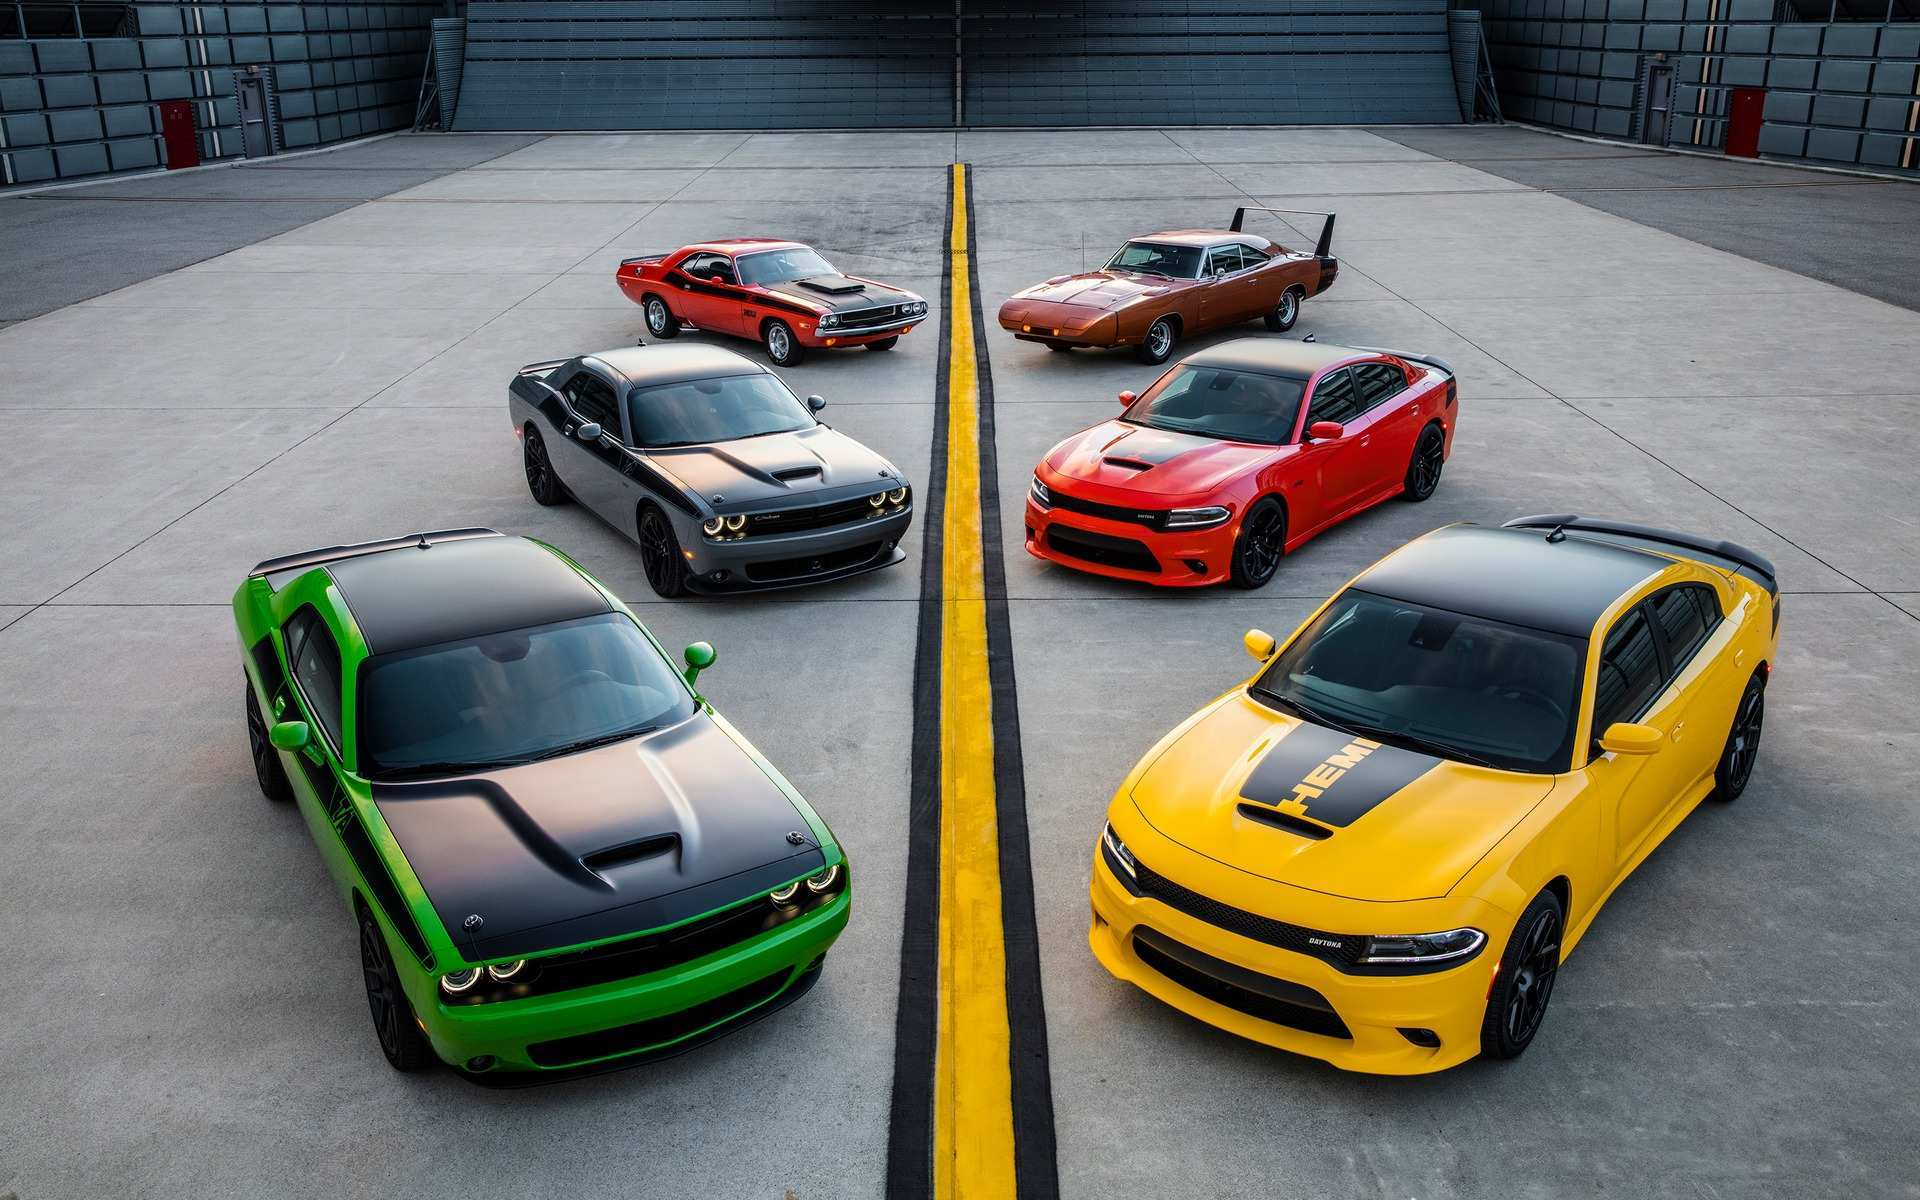 34 New 2020 Dodge Charger Update Redesign and Concept by 2020 Dodge Charger Update